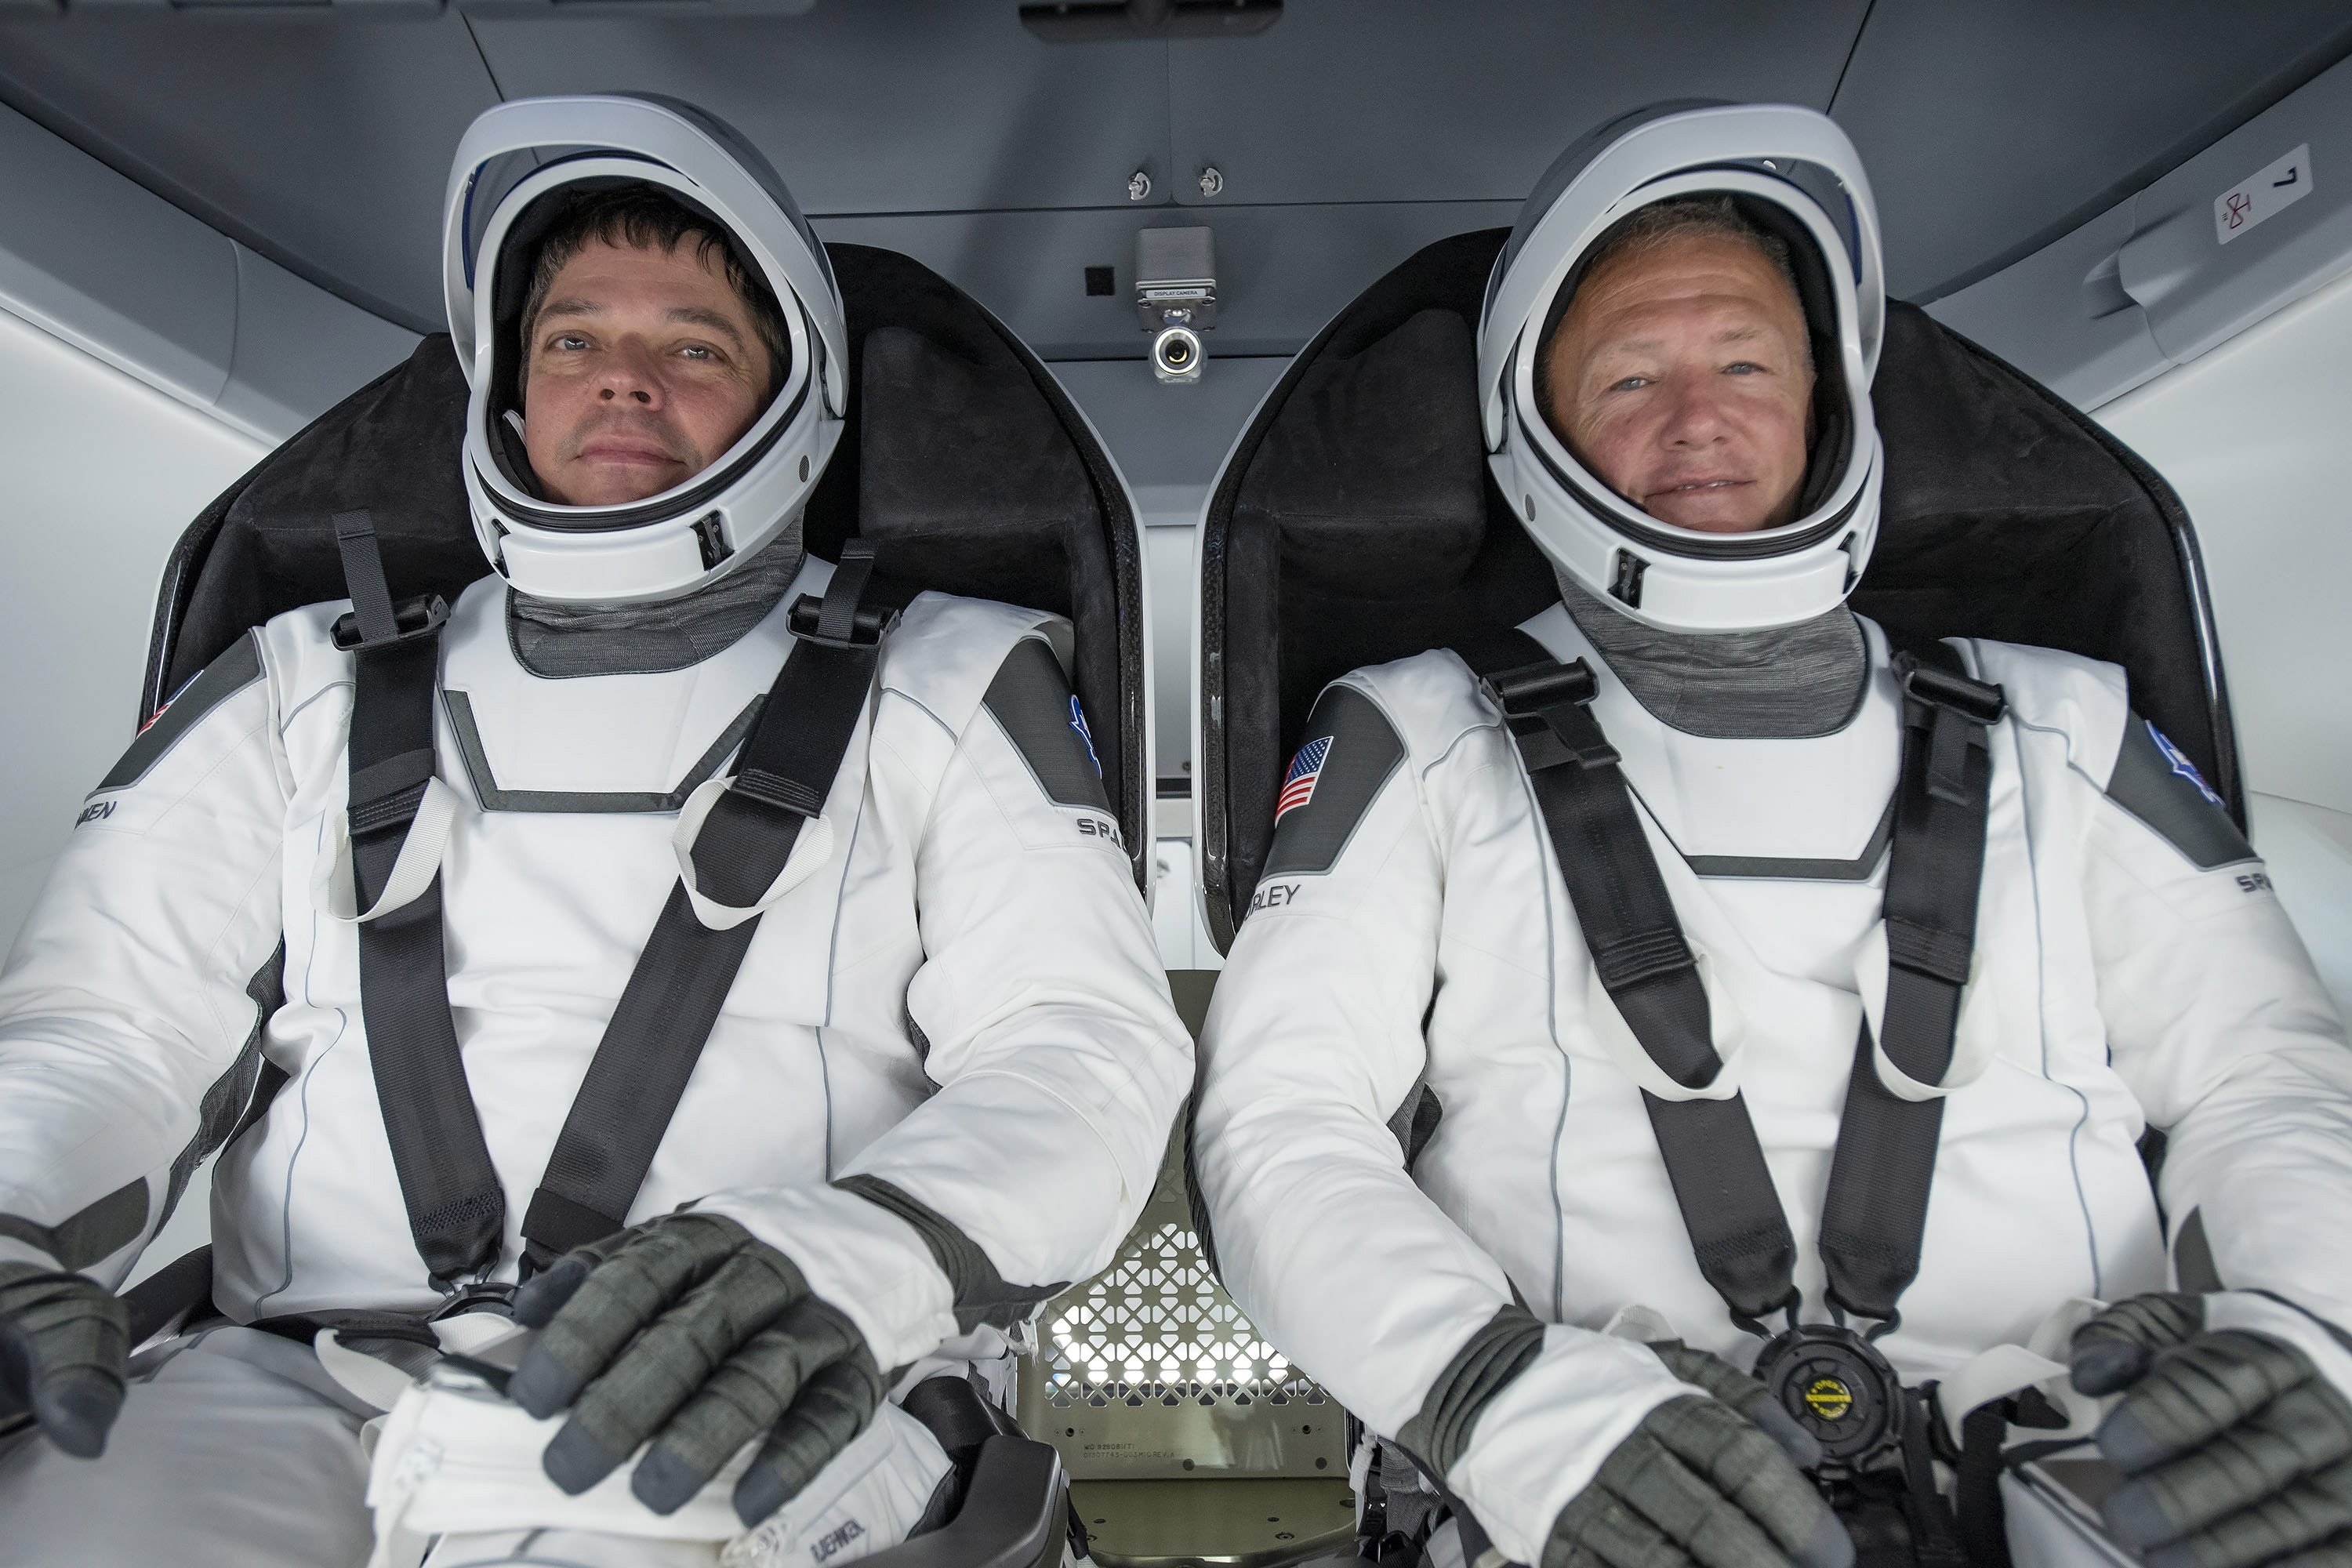 A handout picture made available by SpaceX shows NASA astronauts Bob Behnken (L) and Doug Hurley participating in a fully integrated test of SpaceX Crew Dragon flight hardware at the SpaceX processing facility on Cape Canaveral Air Force Station in Florida, U.S., March 30, 2020. (SpaceX handout via EPA)